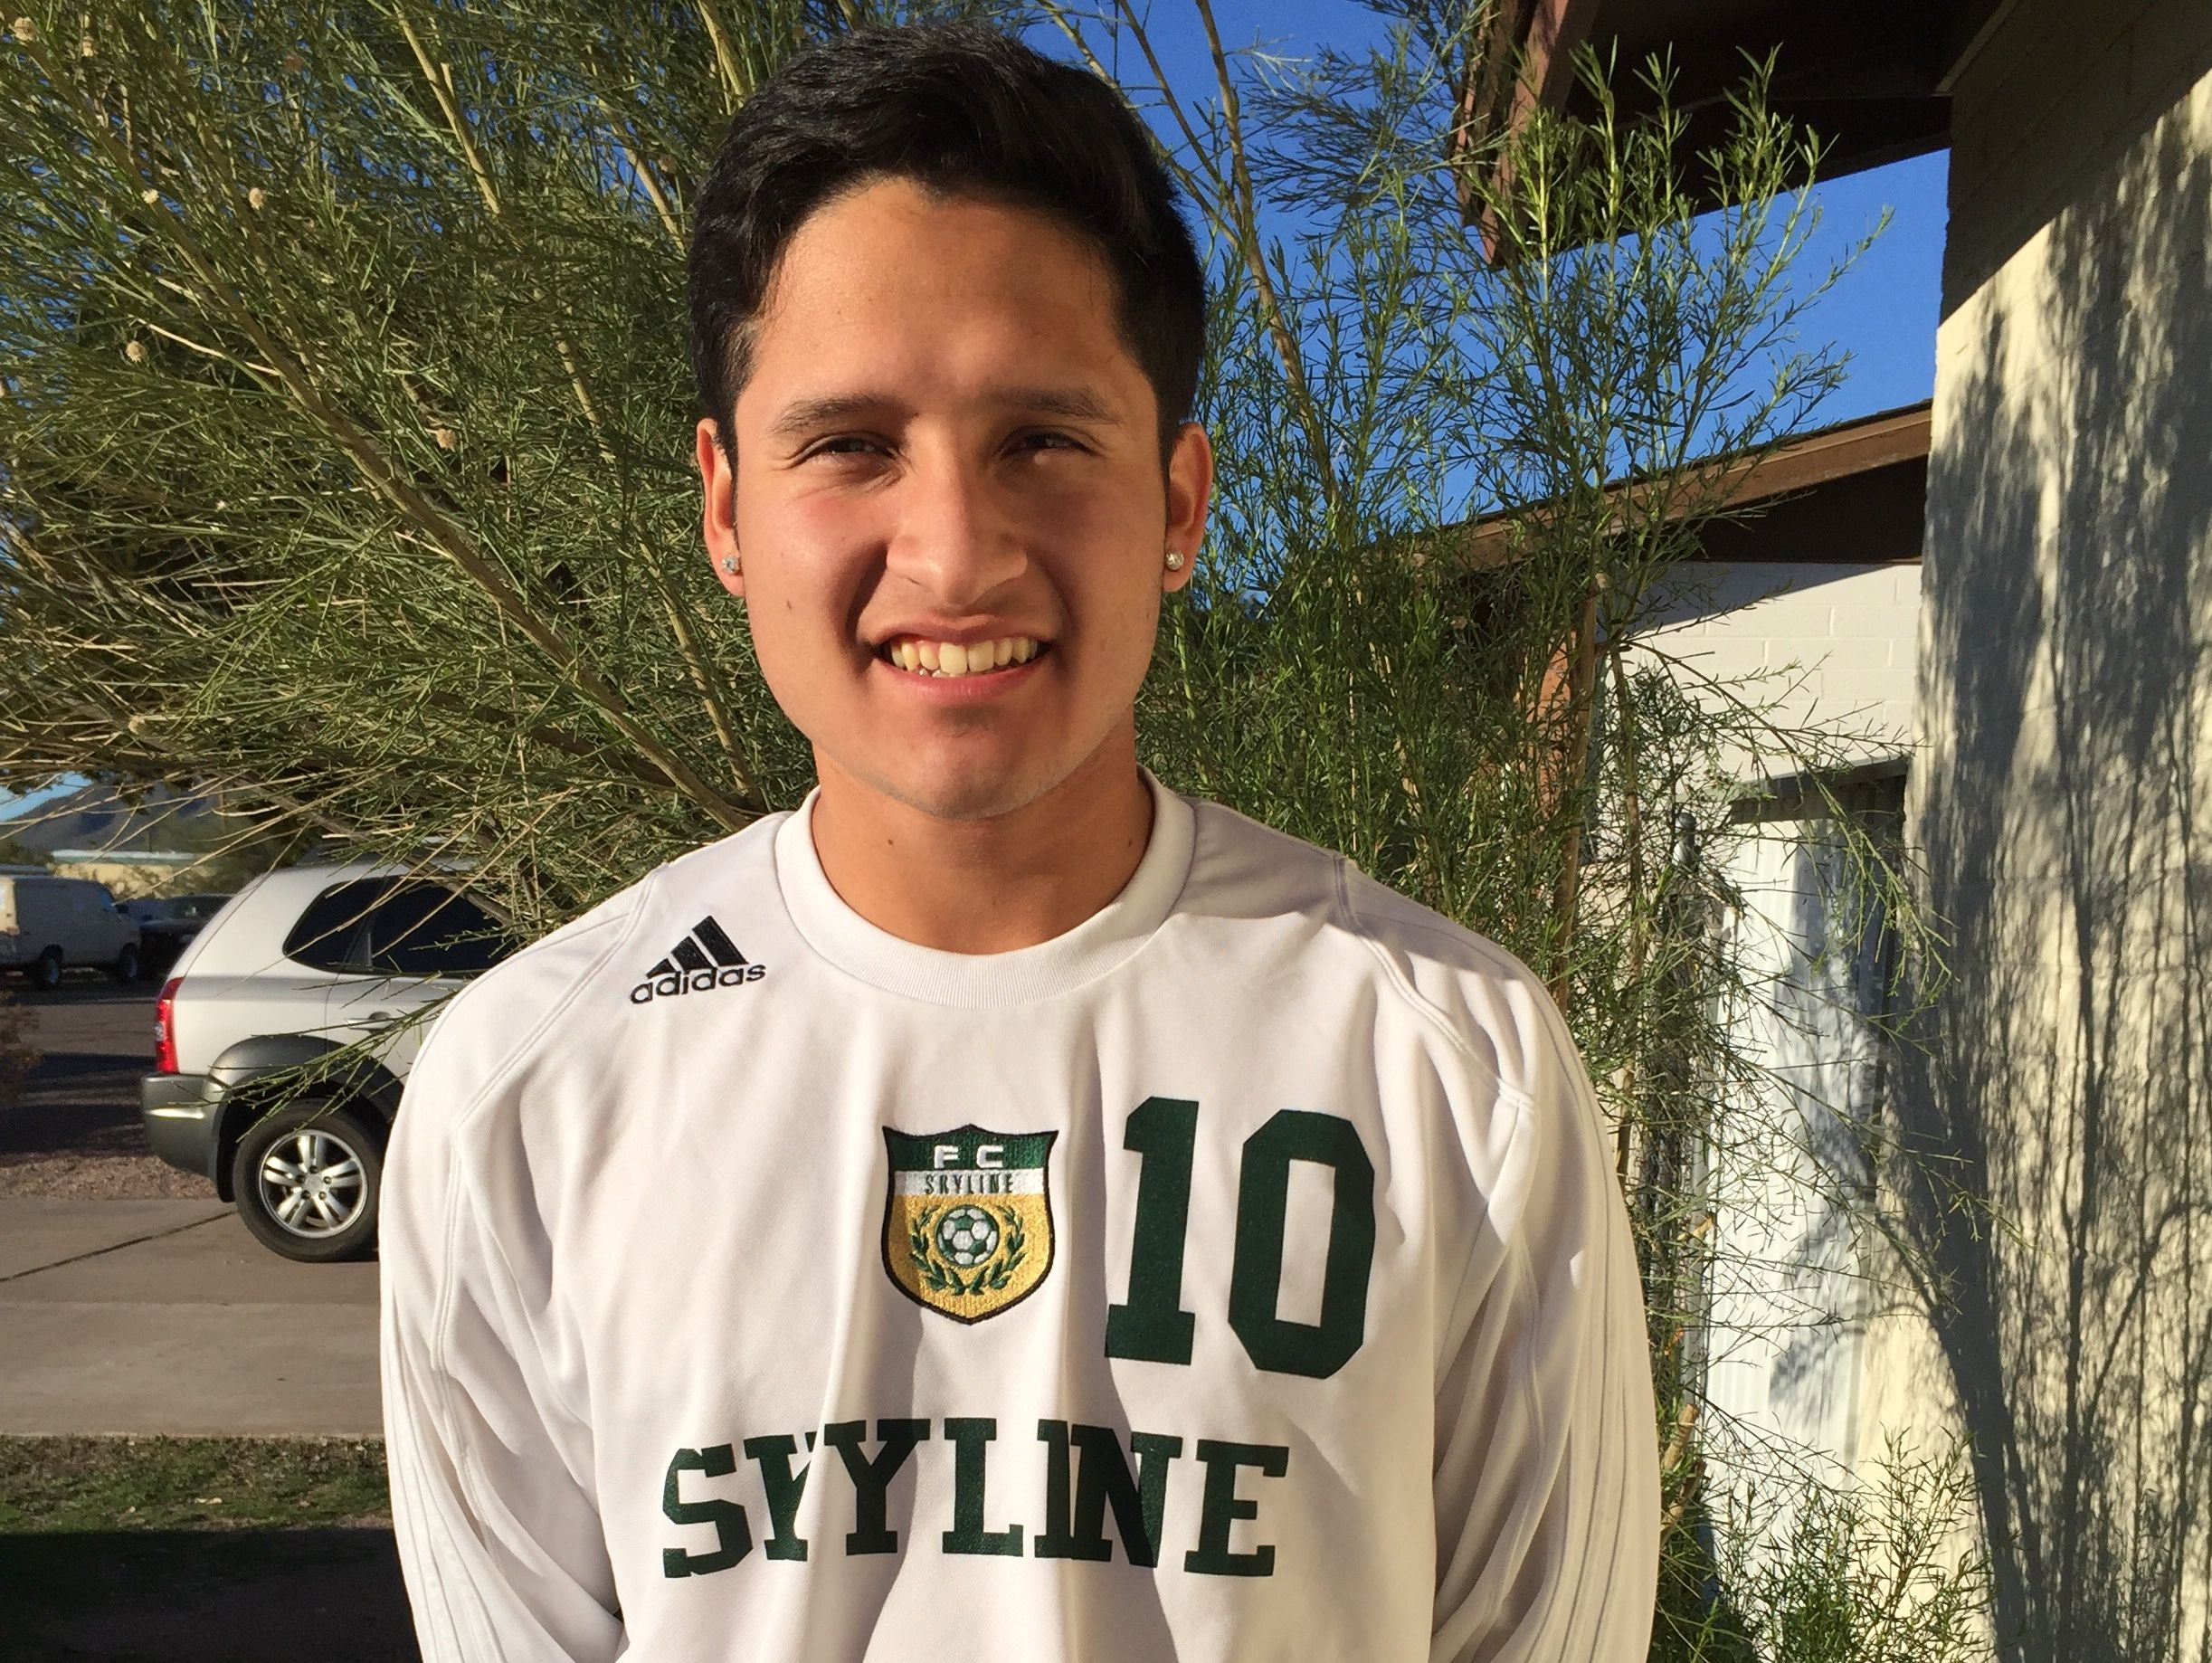 Alejandro Segura, from Mesa Skyline, is azcentral sports' Male Athlete of the Week for Jan. 28 - Feb. 4, presented by La-Z-Boys Furniture Galleries.